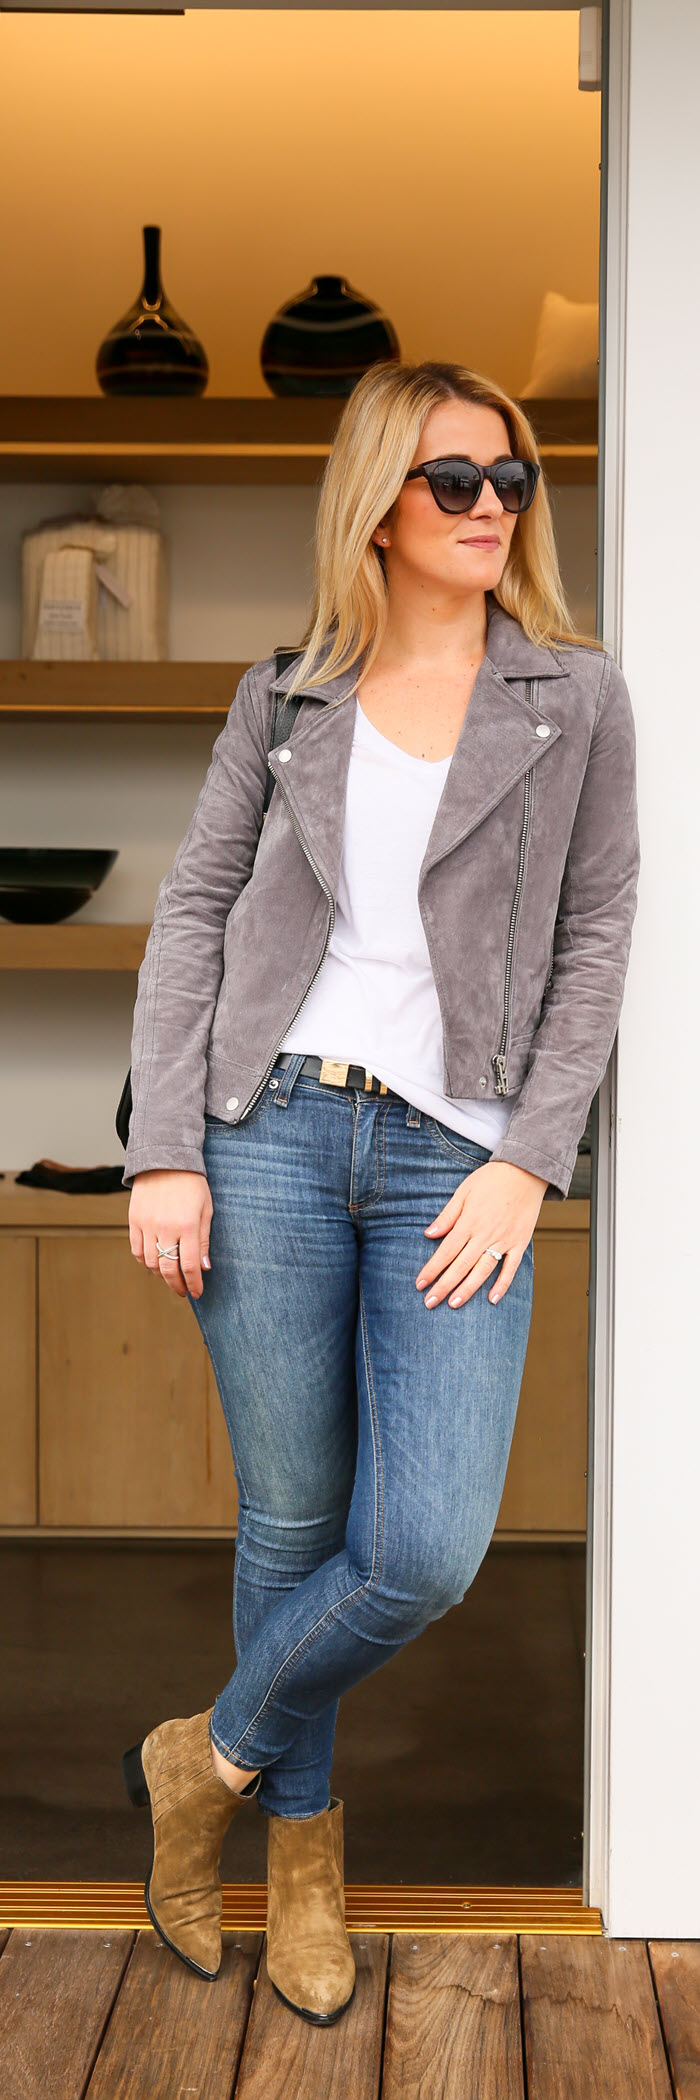 Grey Suede Moto Jacket Outfit at LIDO Newport Beach   Luciu0026#39;s Morsels